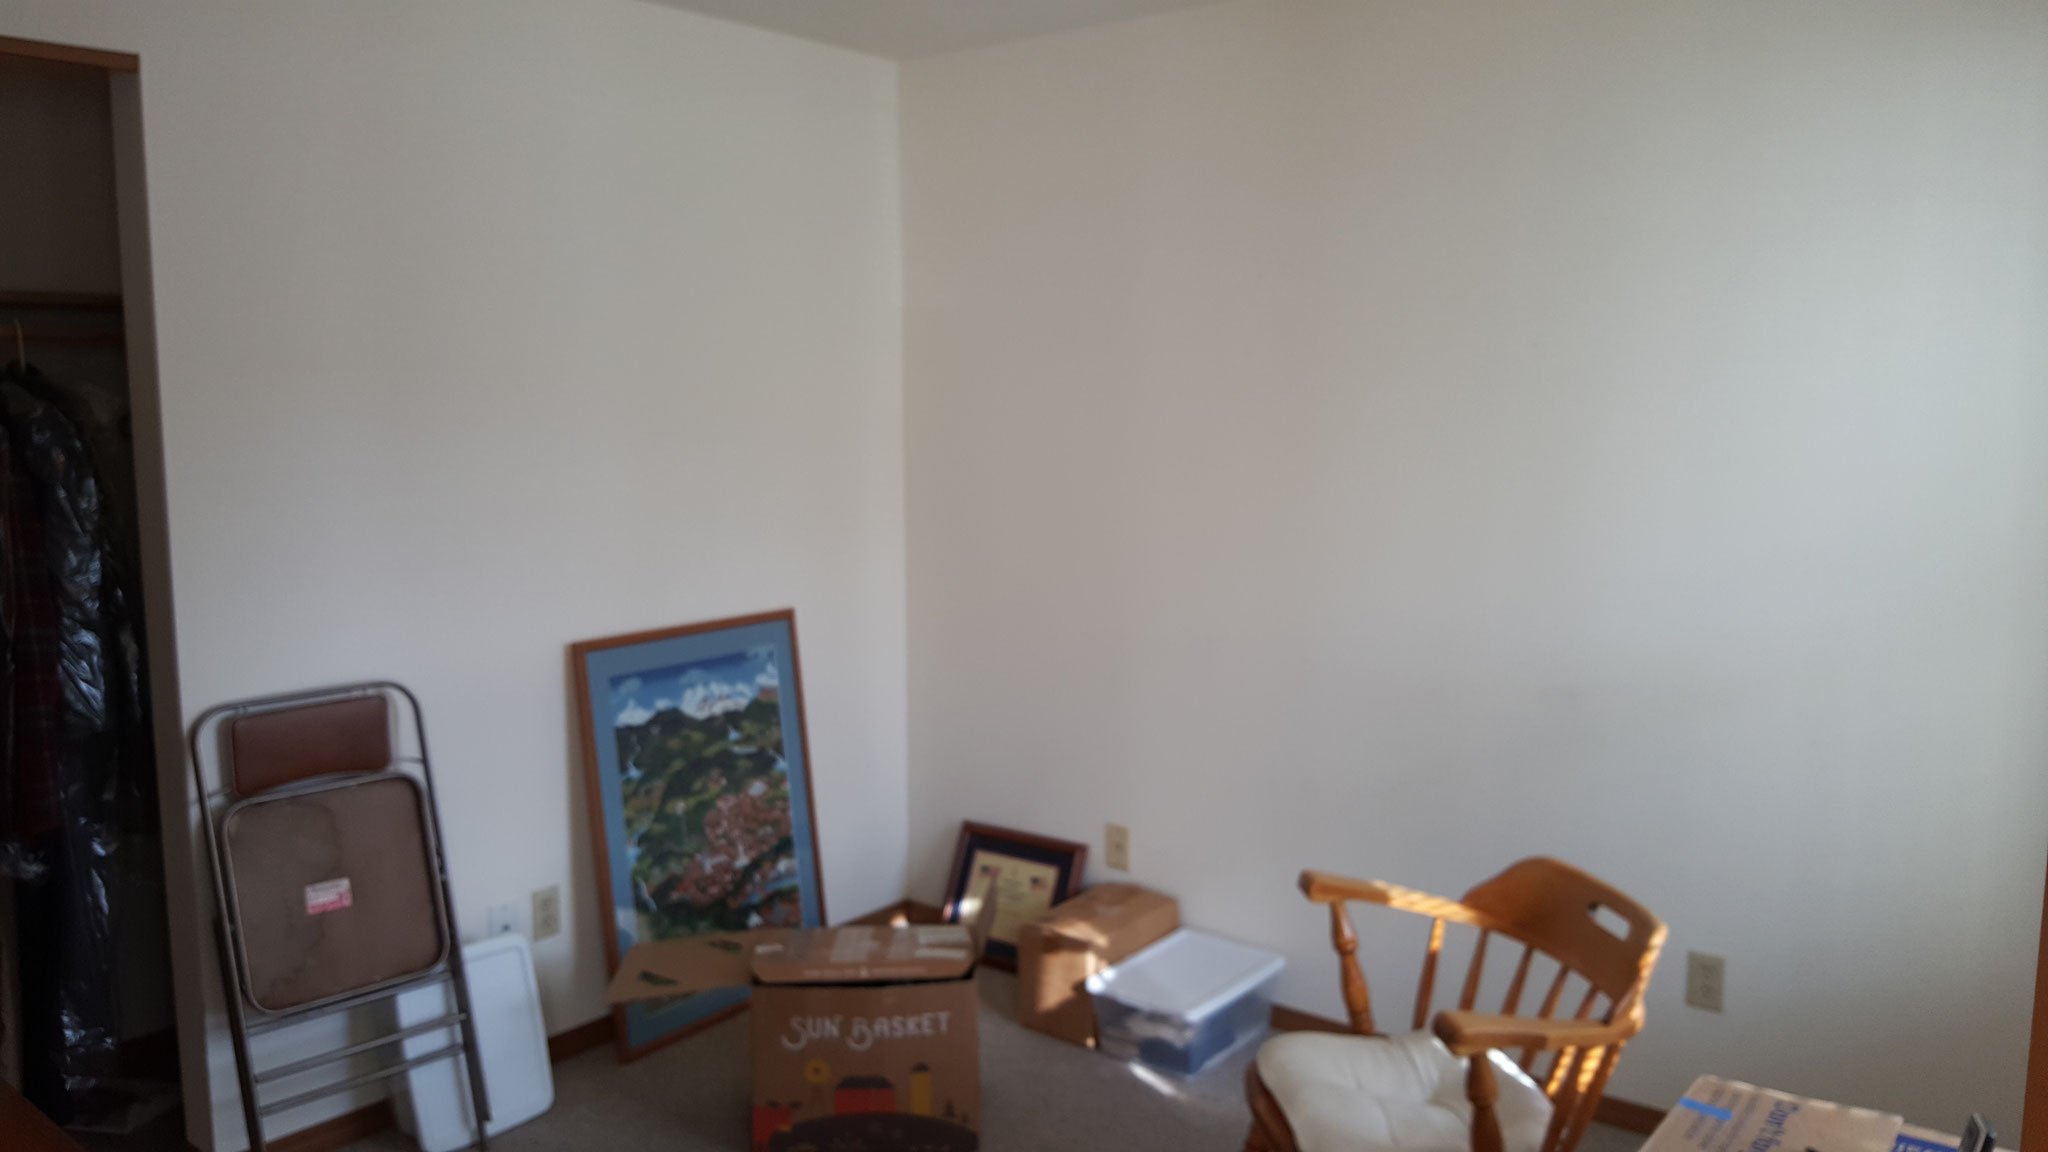 Office Before Staging